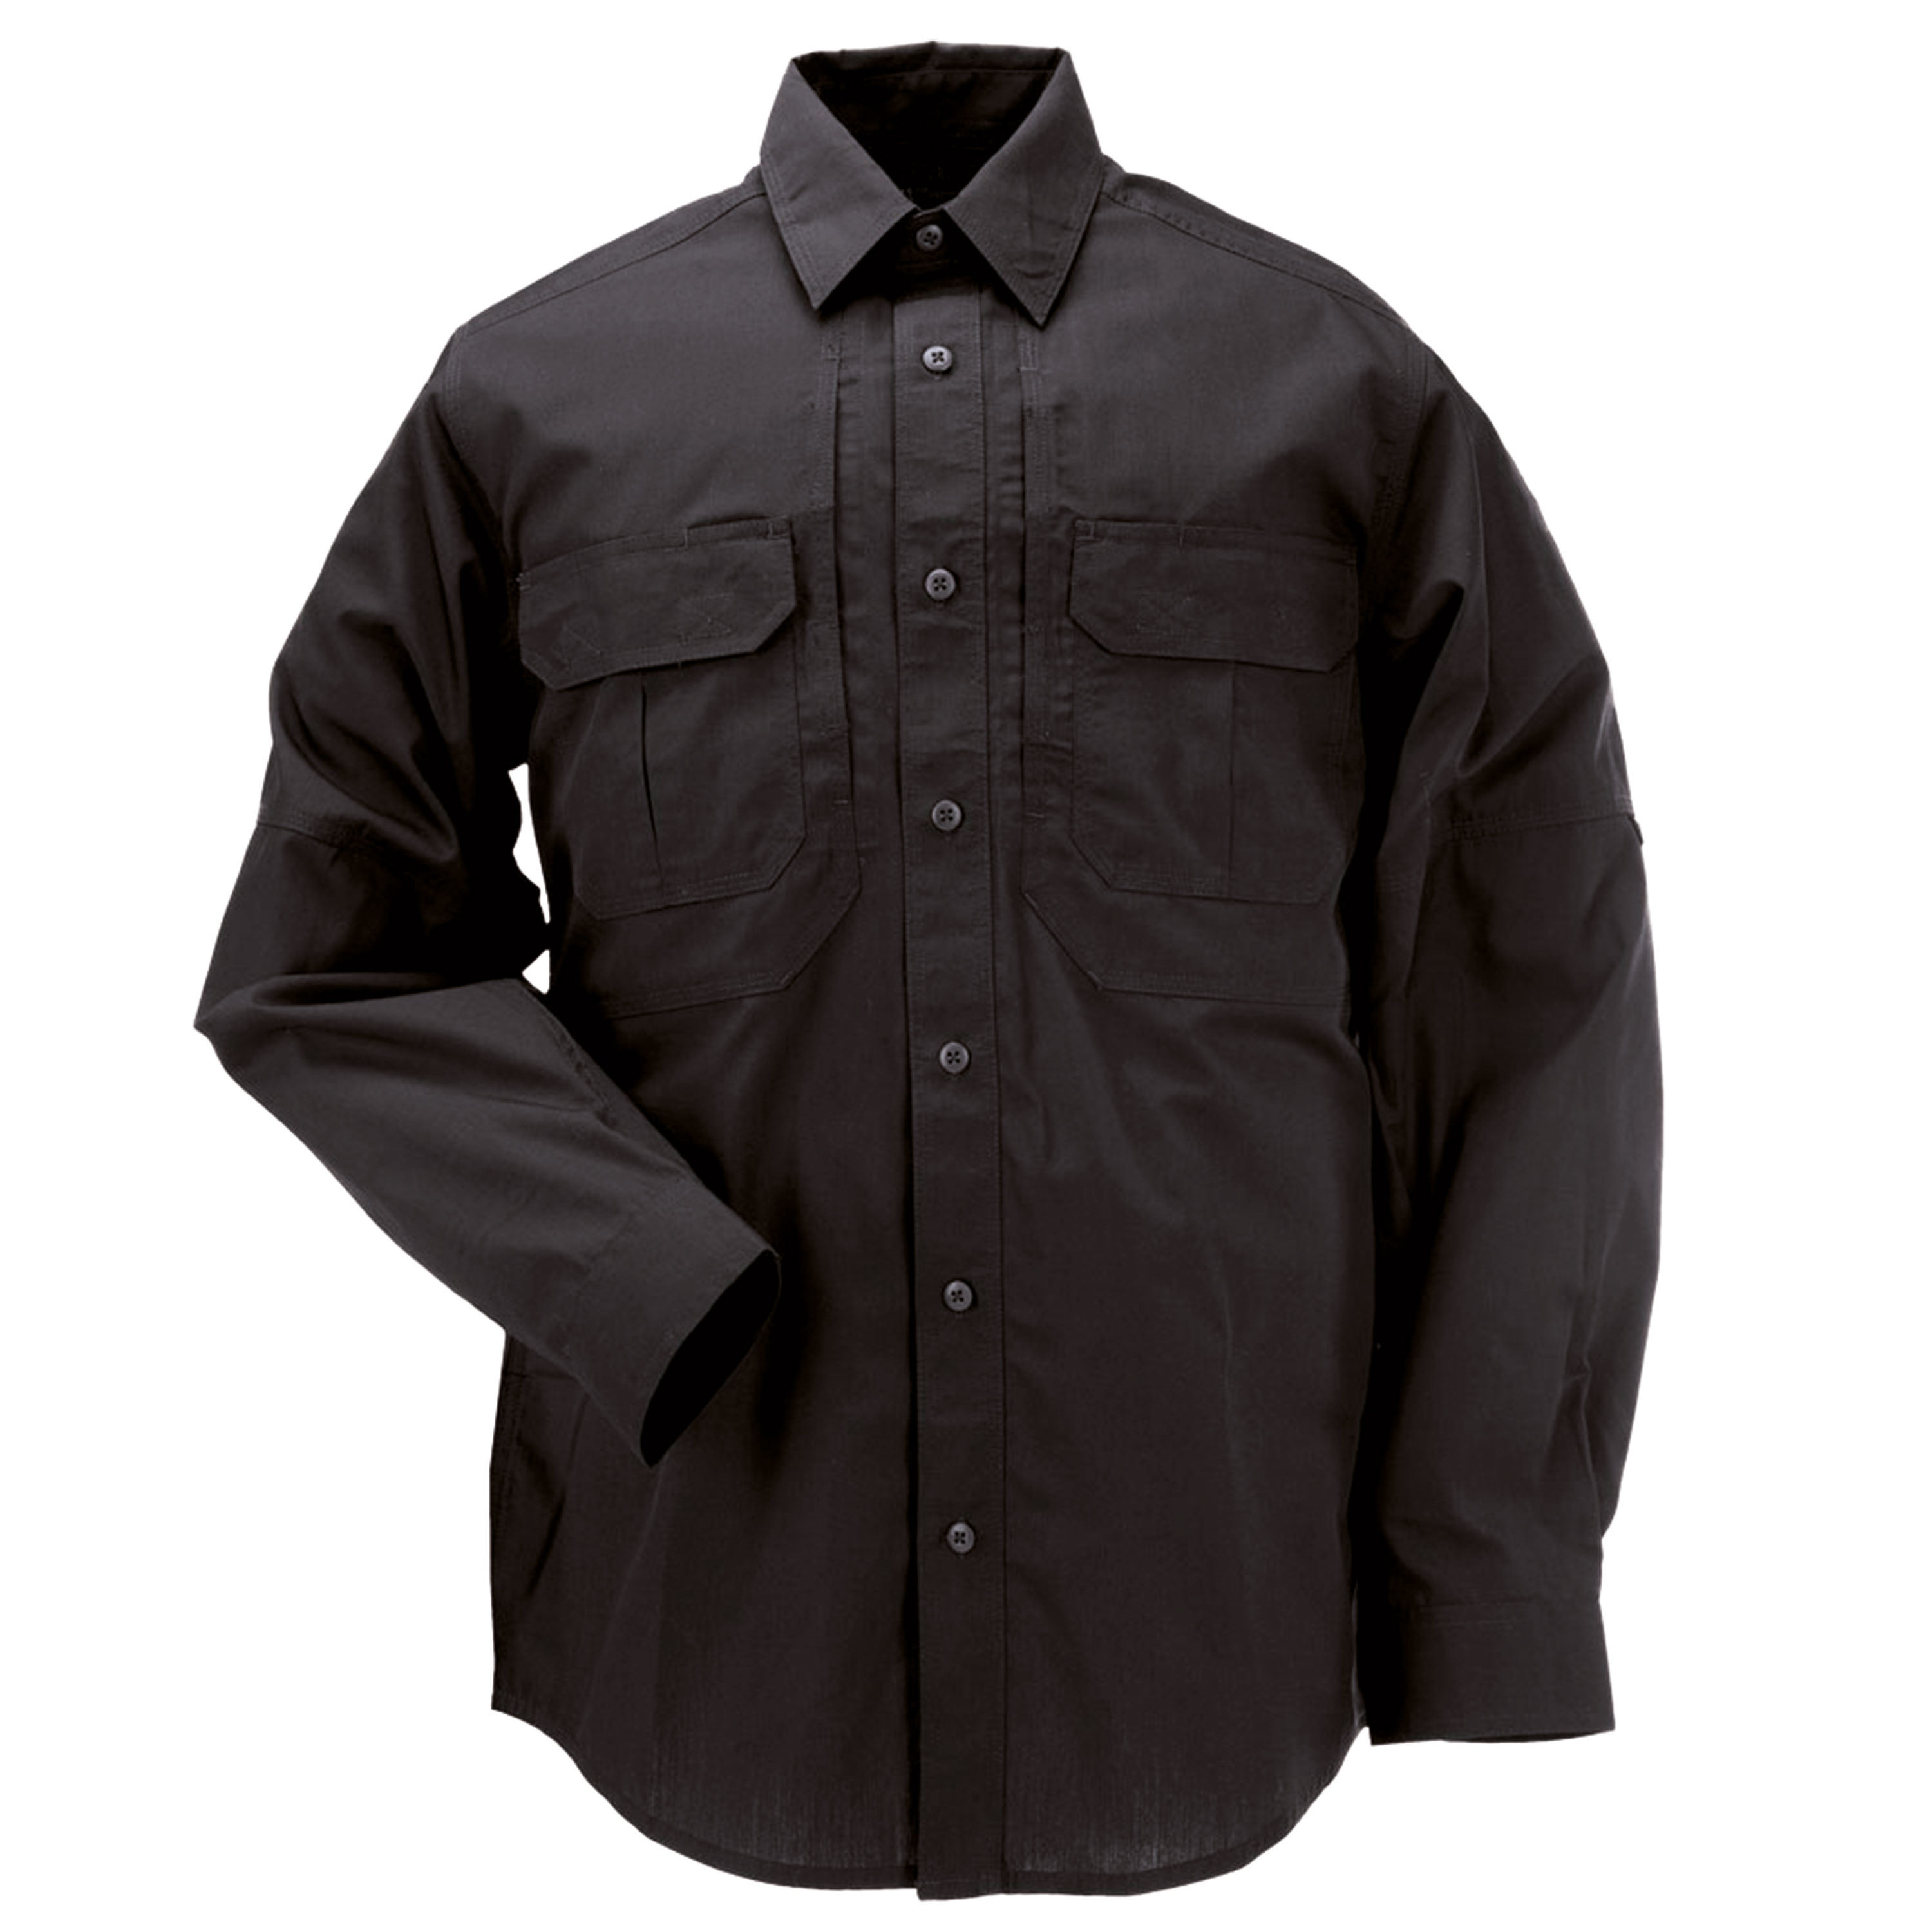 5.11 Taclite Pro Shirt Long Sleeved black